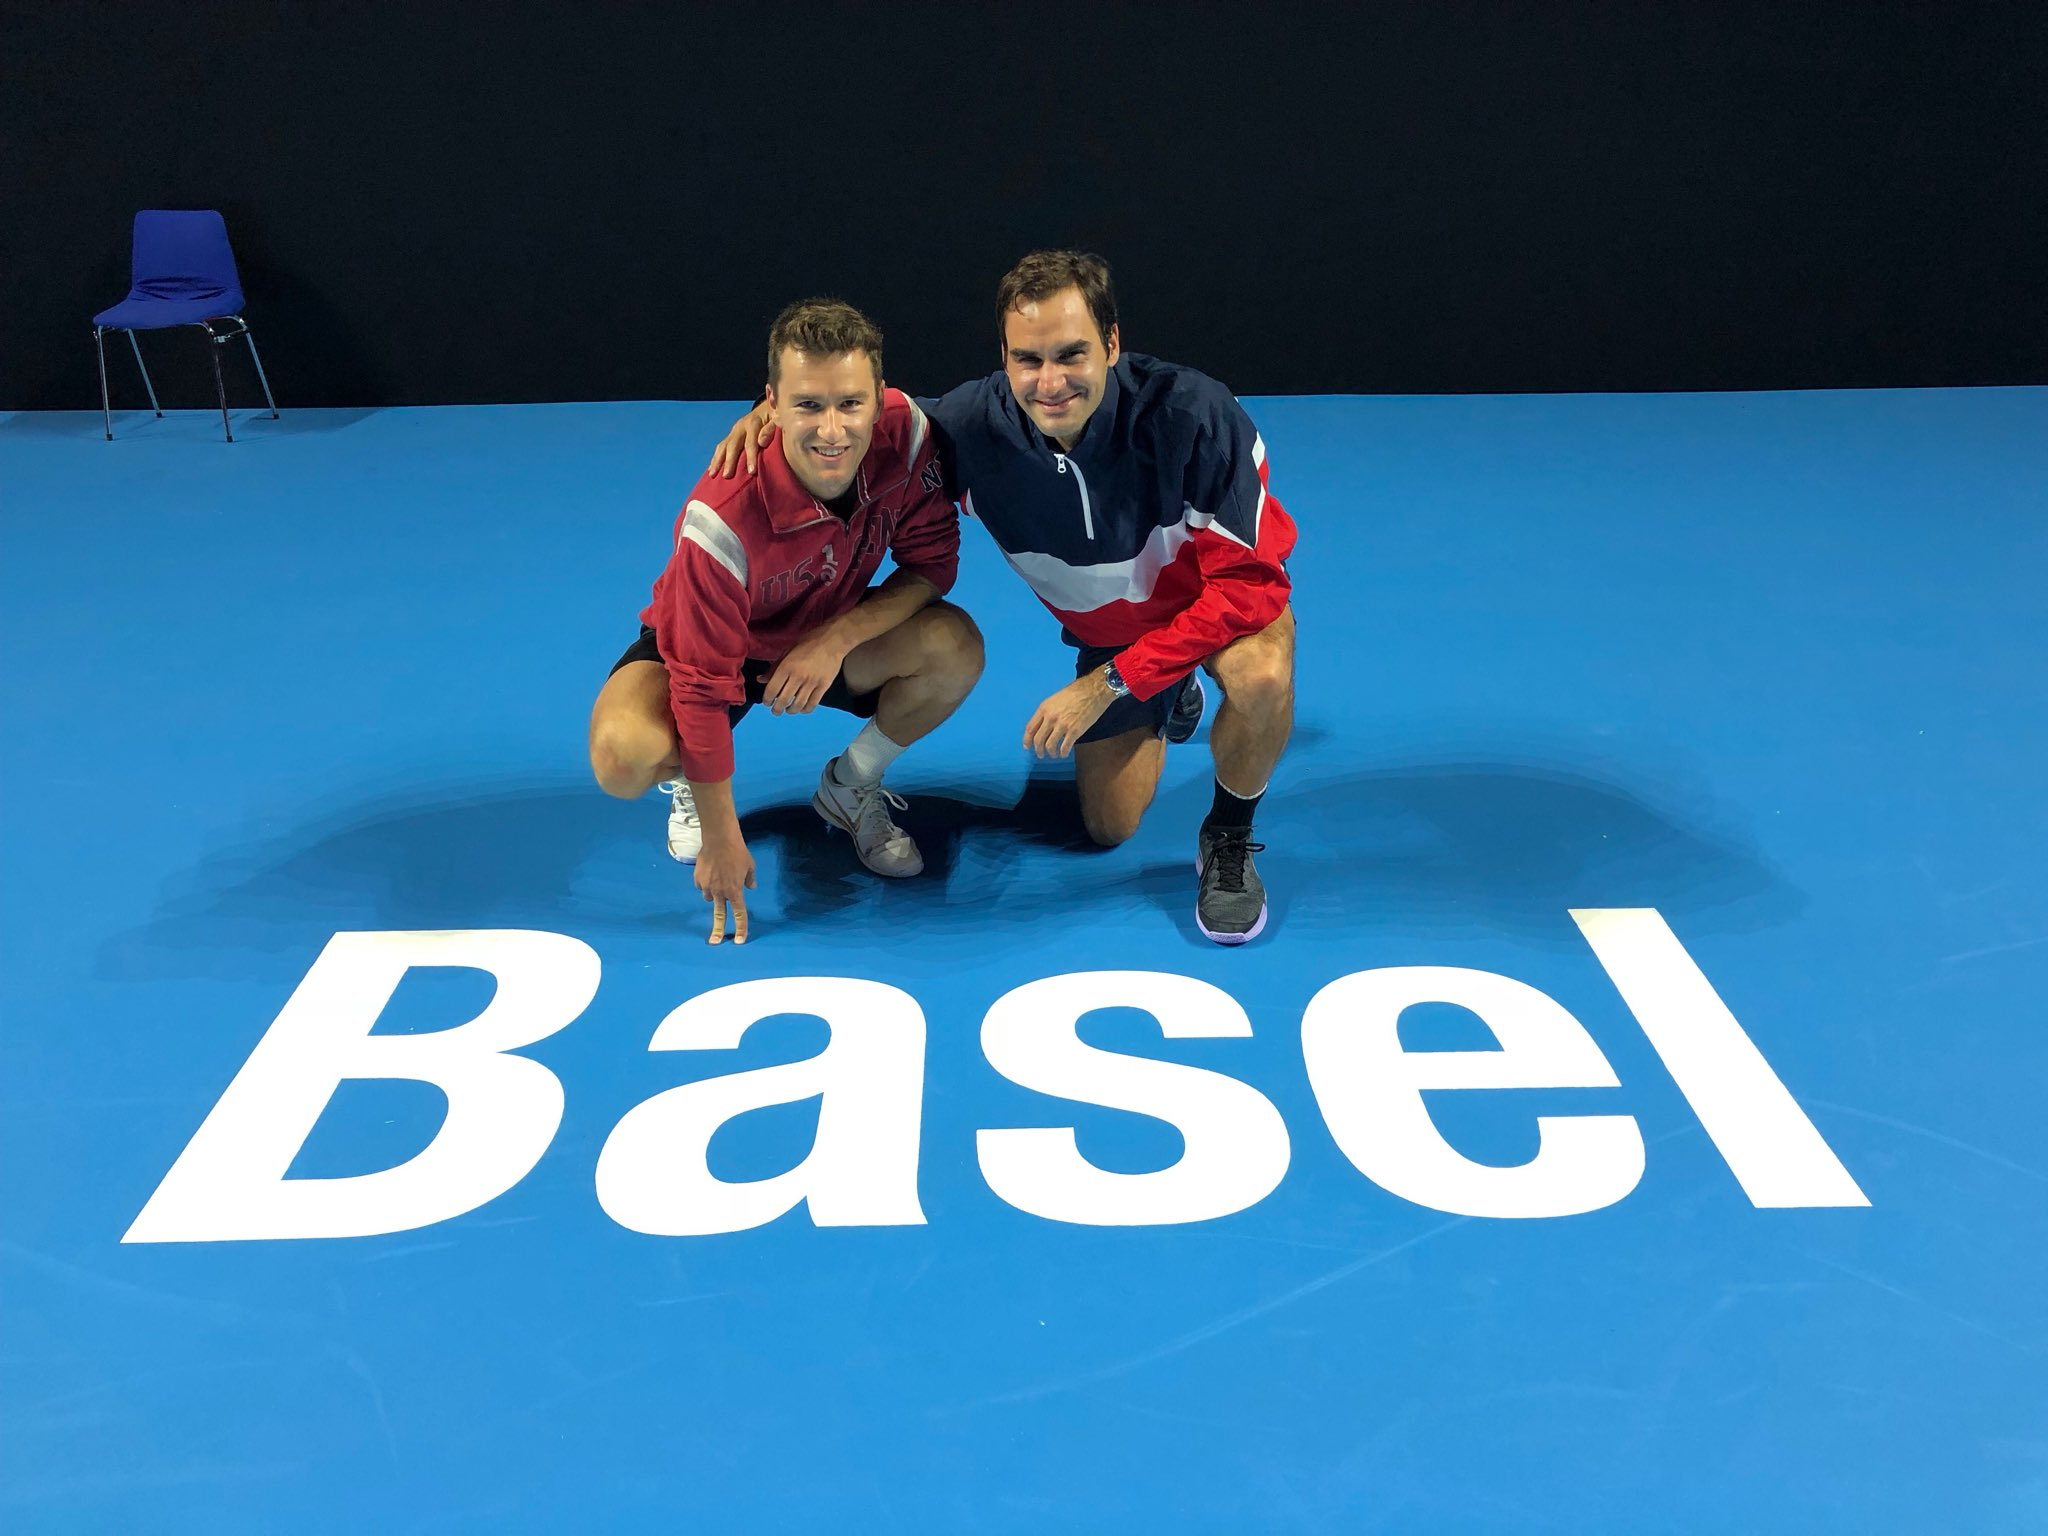 Basel ❤️ So happy to be back in ���� Here with my man the MC @mchiudinelli33 https://t.co/mU6U4aPGZC